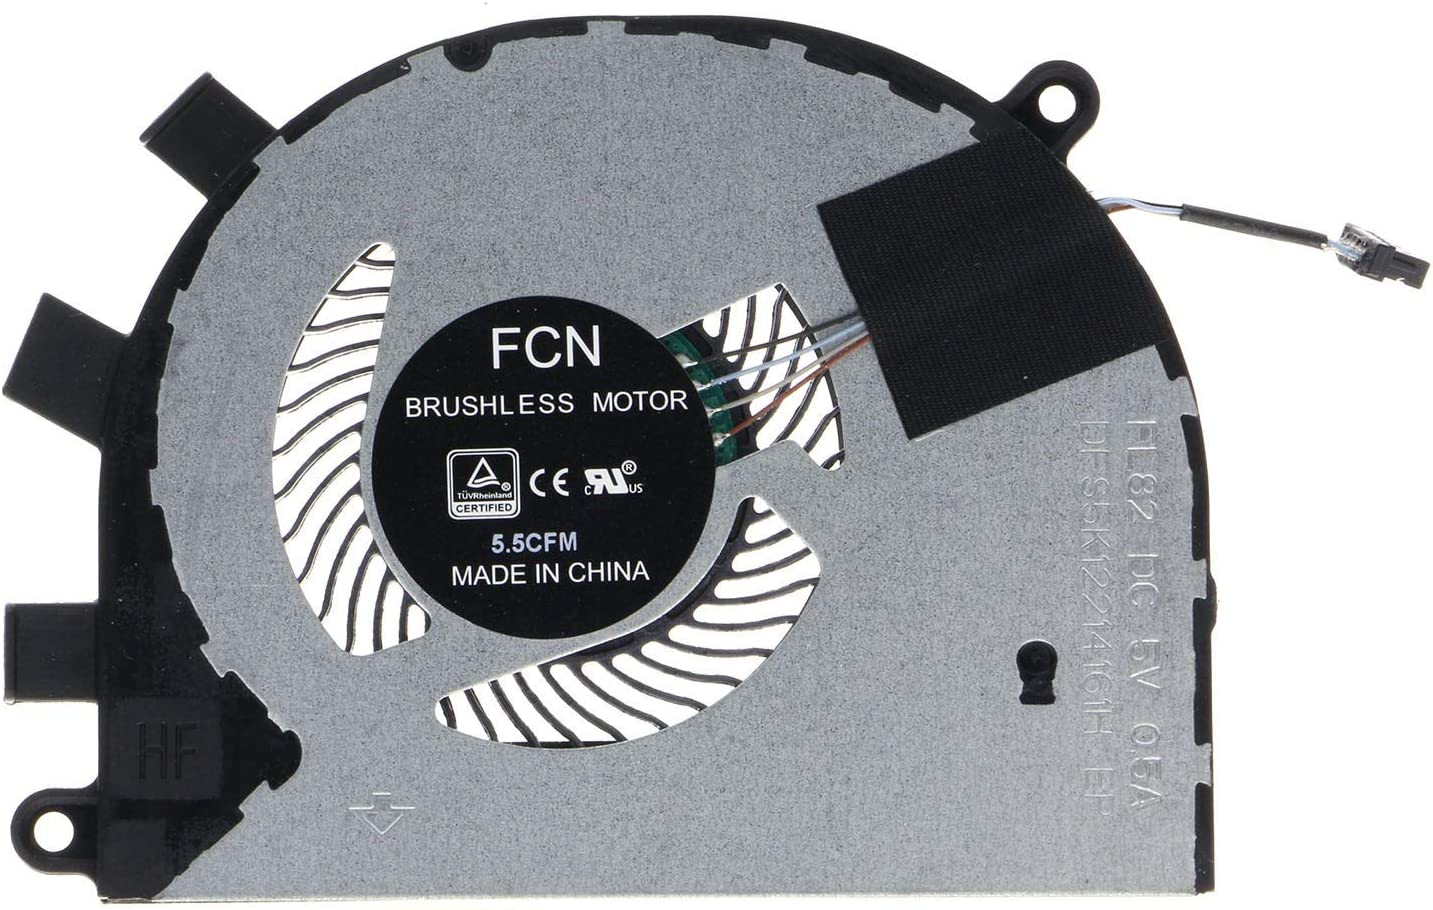 CPU Cooling Fan for Dell Inspiron 5584 15-5584 Dell Latitude 3400 3500 0T6RHW